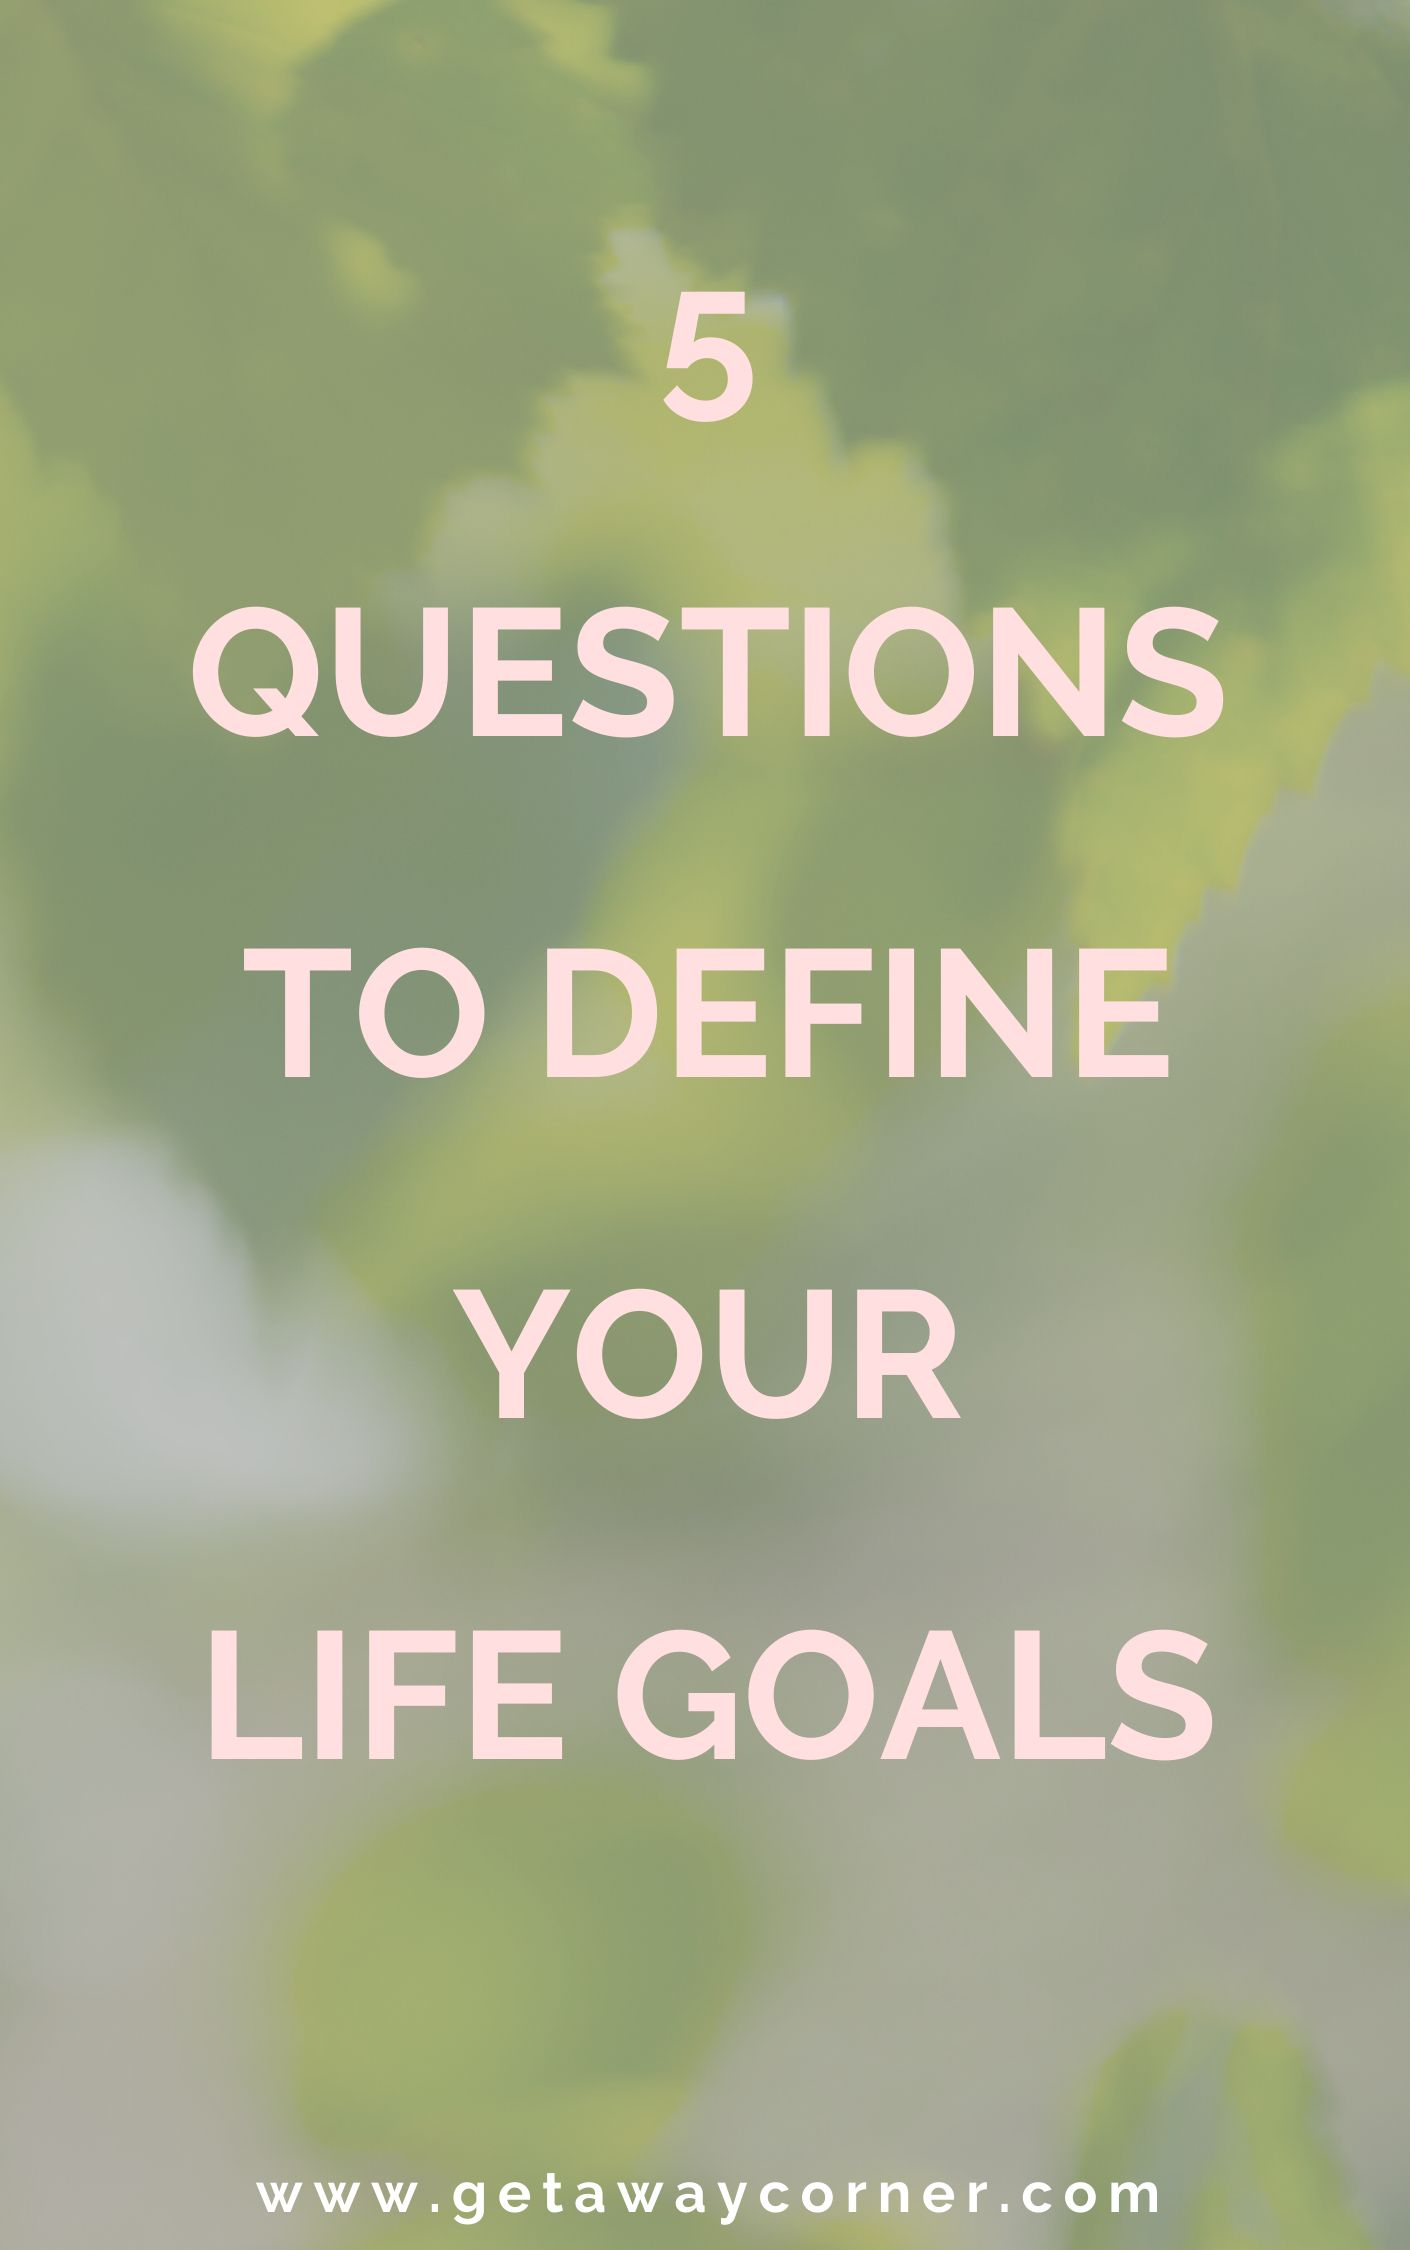 5 Questions To Help You Make Life Goals